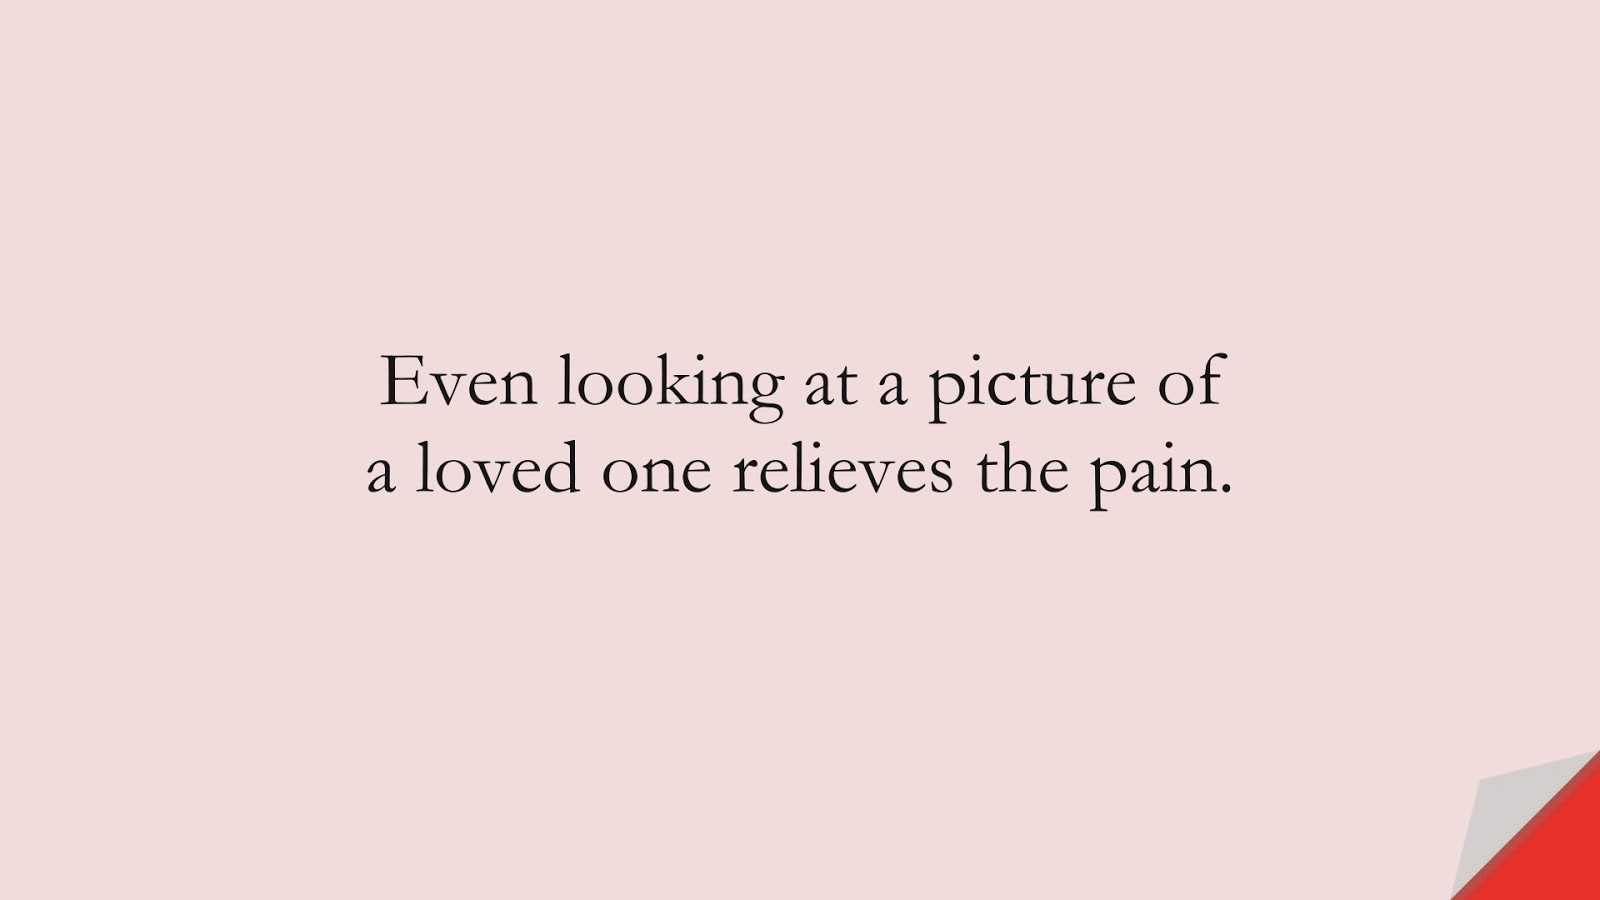 Even looking at a picture of a loved one relieves the pain.FALSE